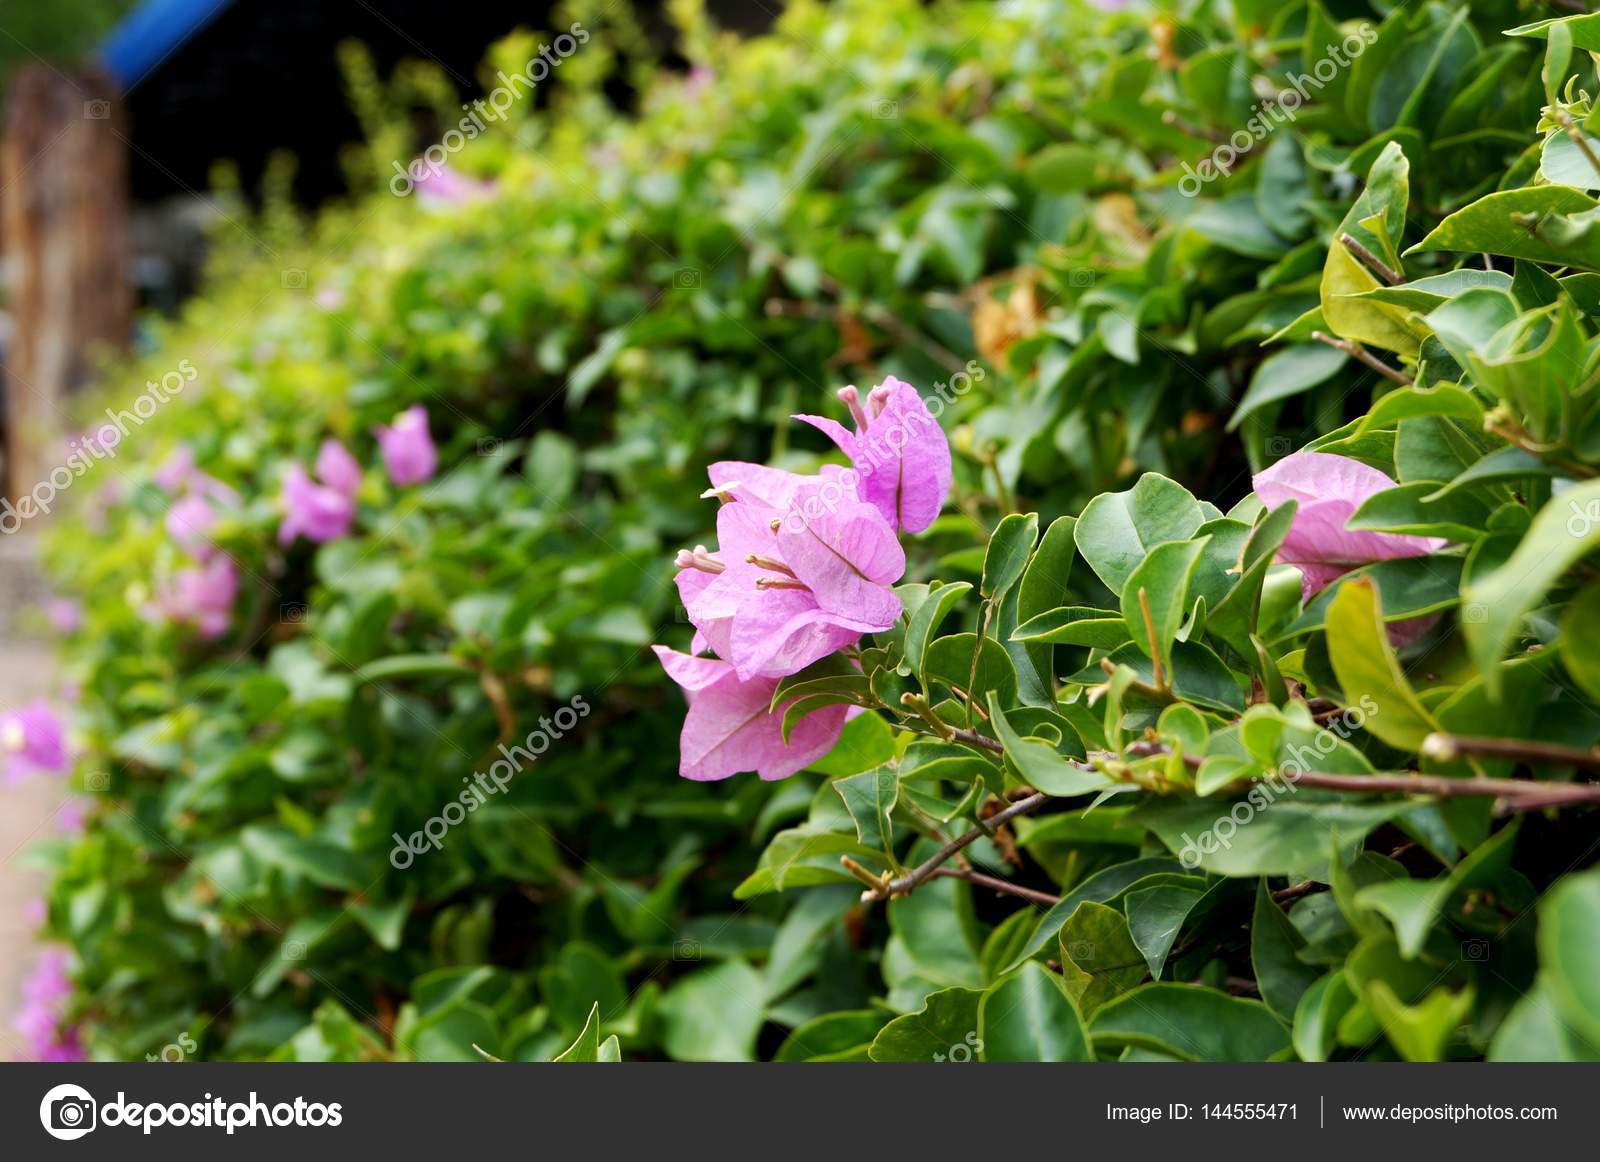 Flowering Shrub With Small Pink Flowers Stock Photo Chydanat